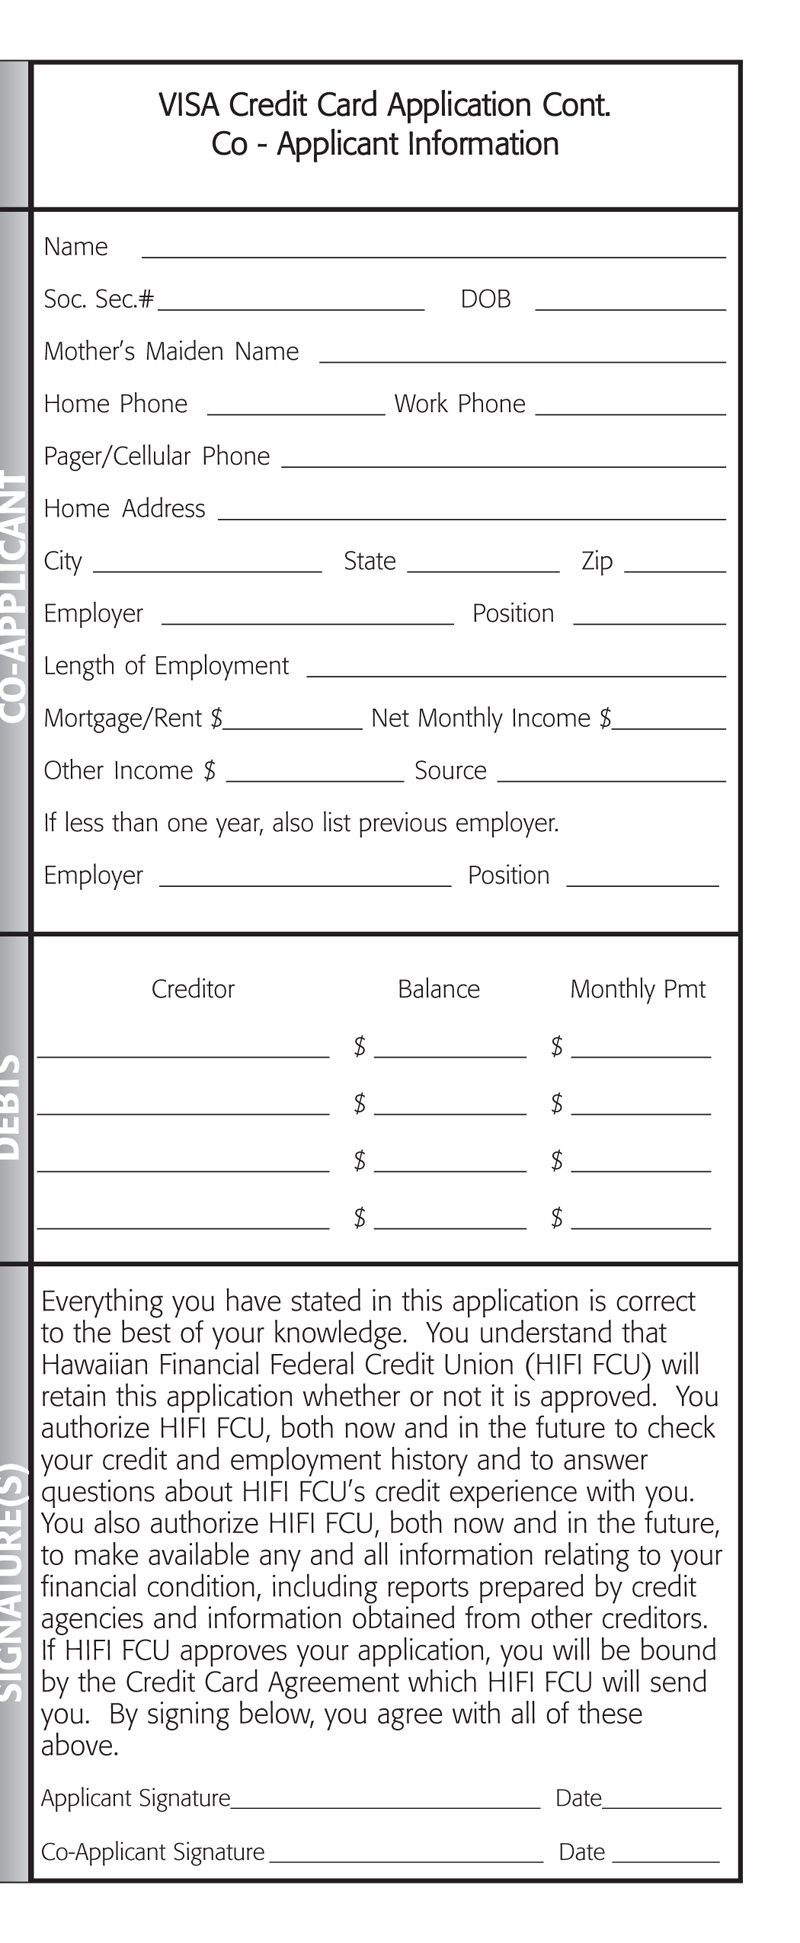 VISA Application Brochure Page 5